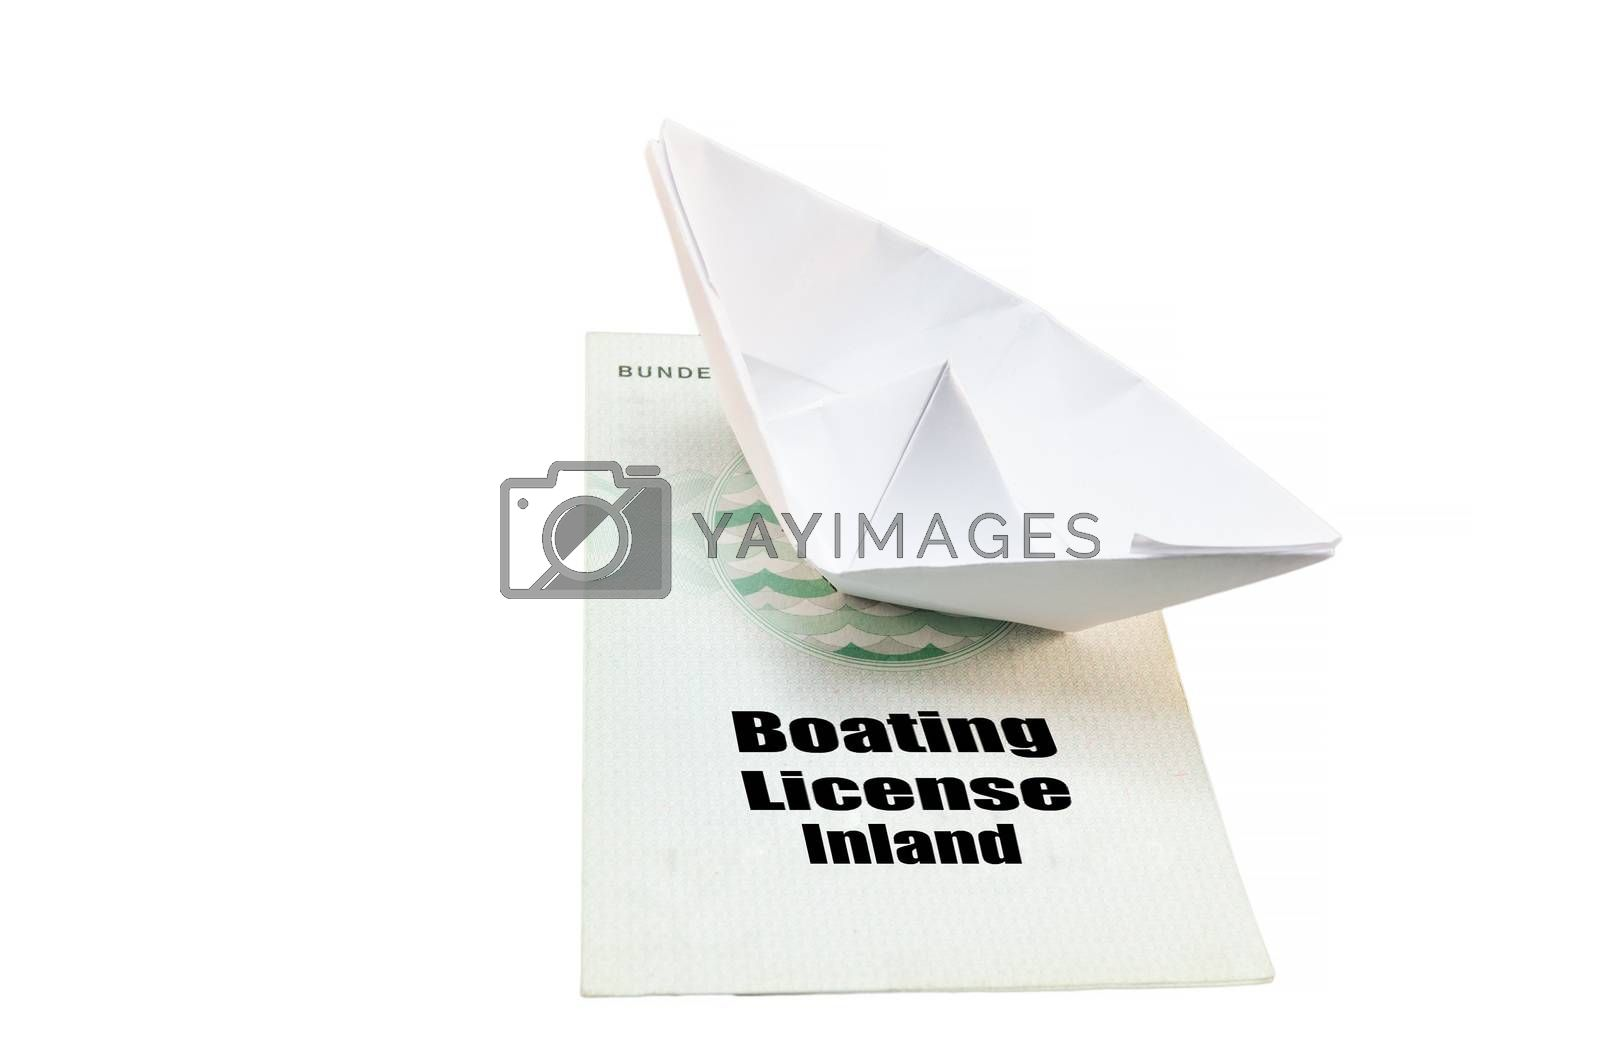 Royalty free image of Boat license Inland by JFsPic